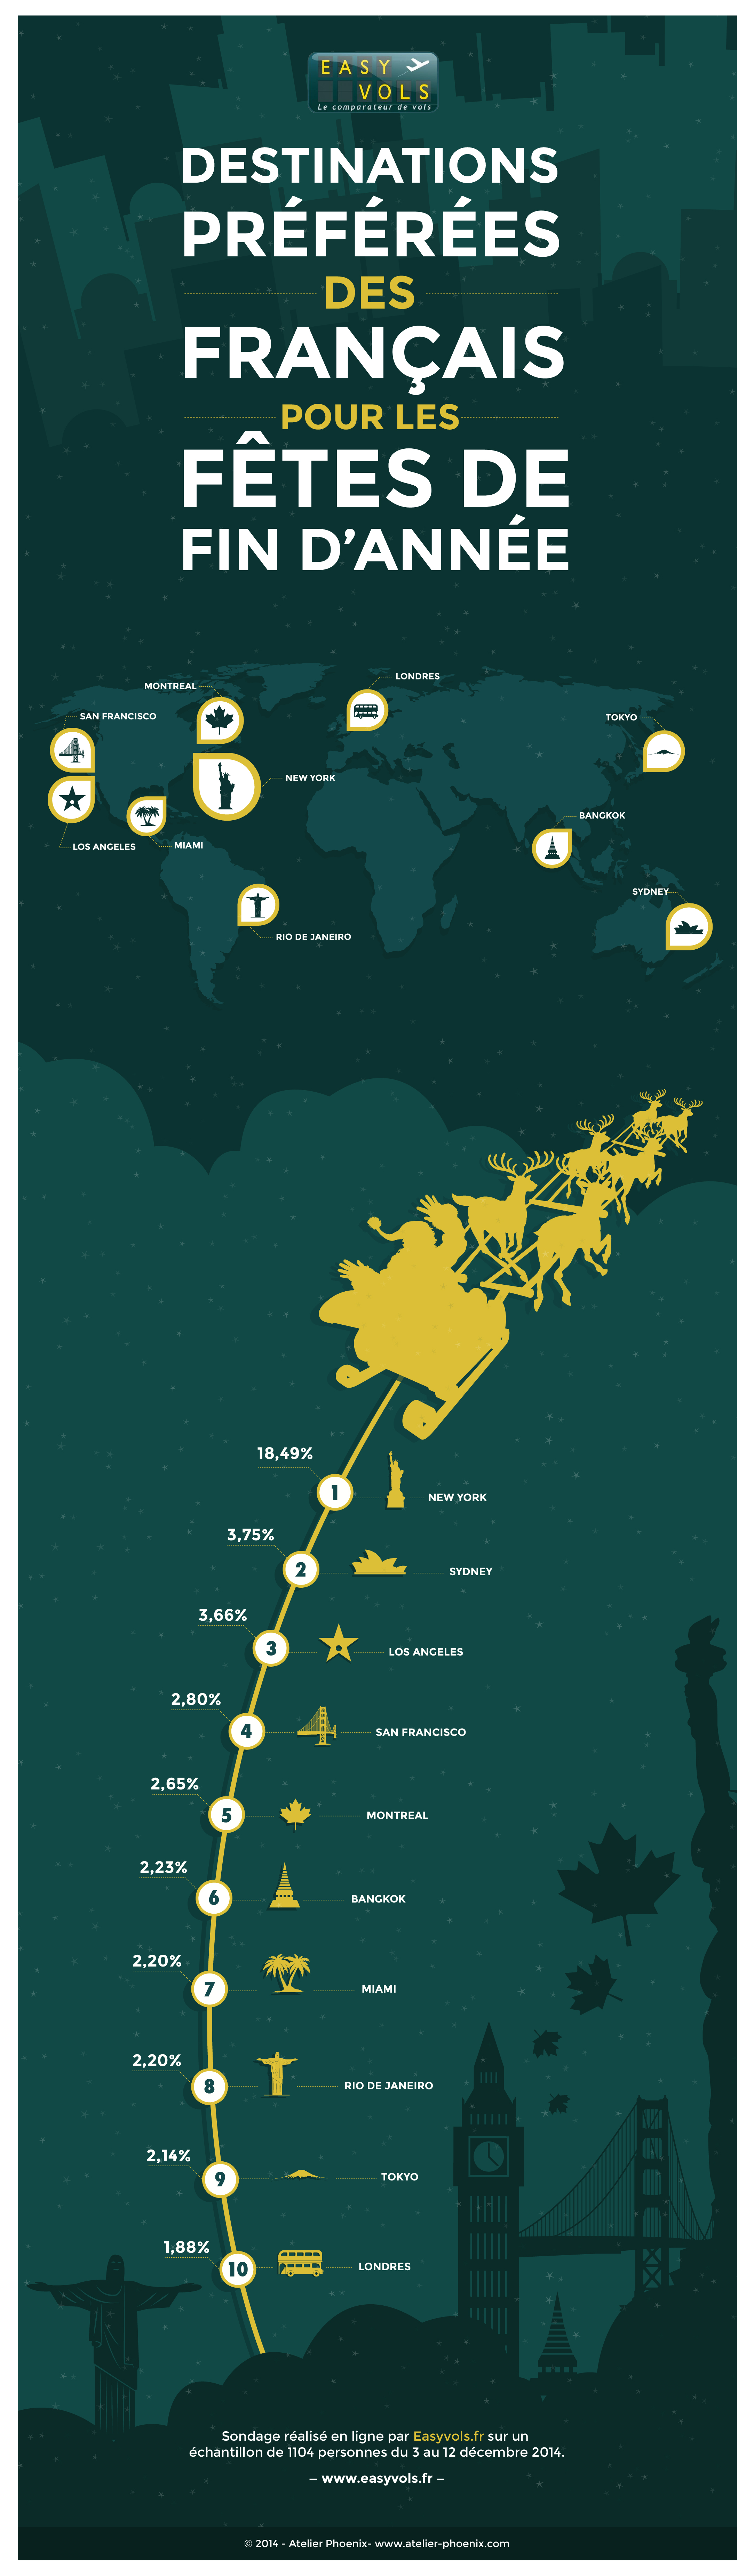 Easyvoyage_infographic_VDef